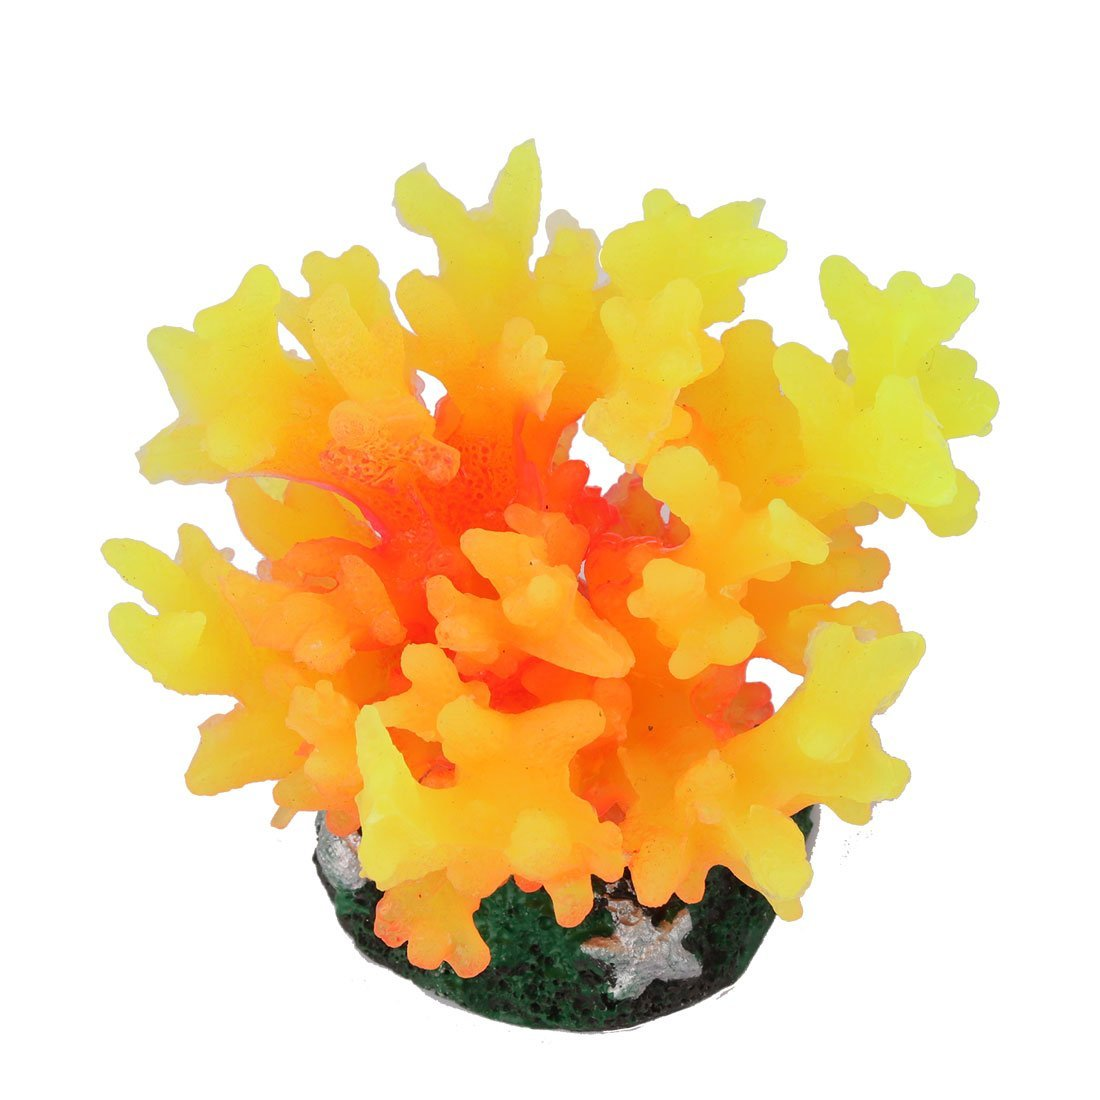 Amazon.com : eDealMax peces de acuario tanque Artificial Waterscape Coral Planta Decoración Naranja Amarillo : Pet Supplies